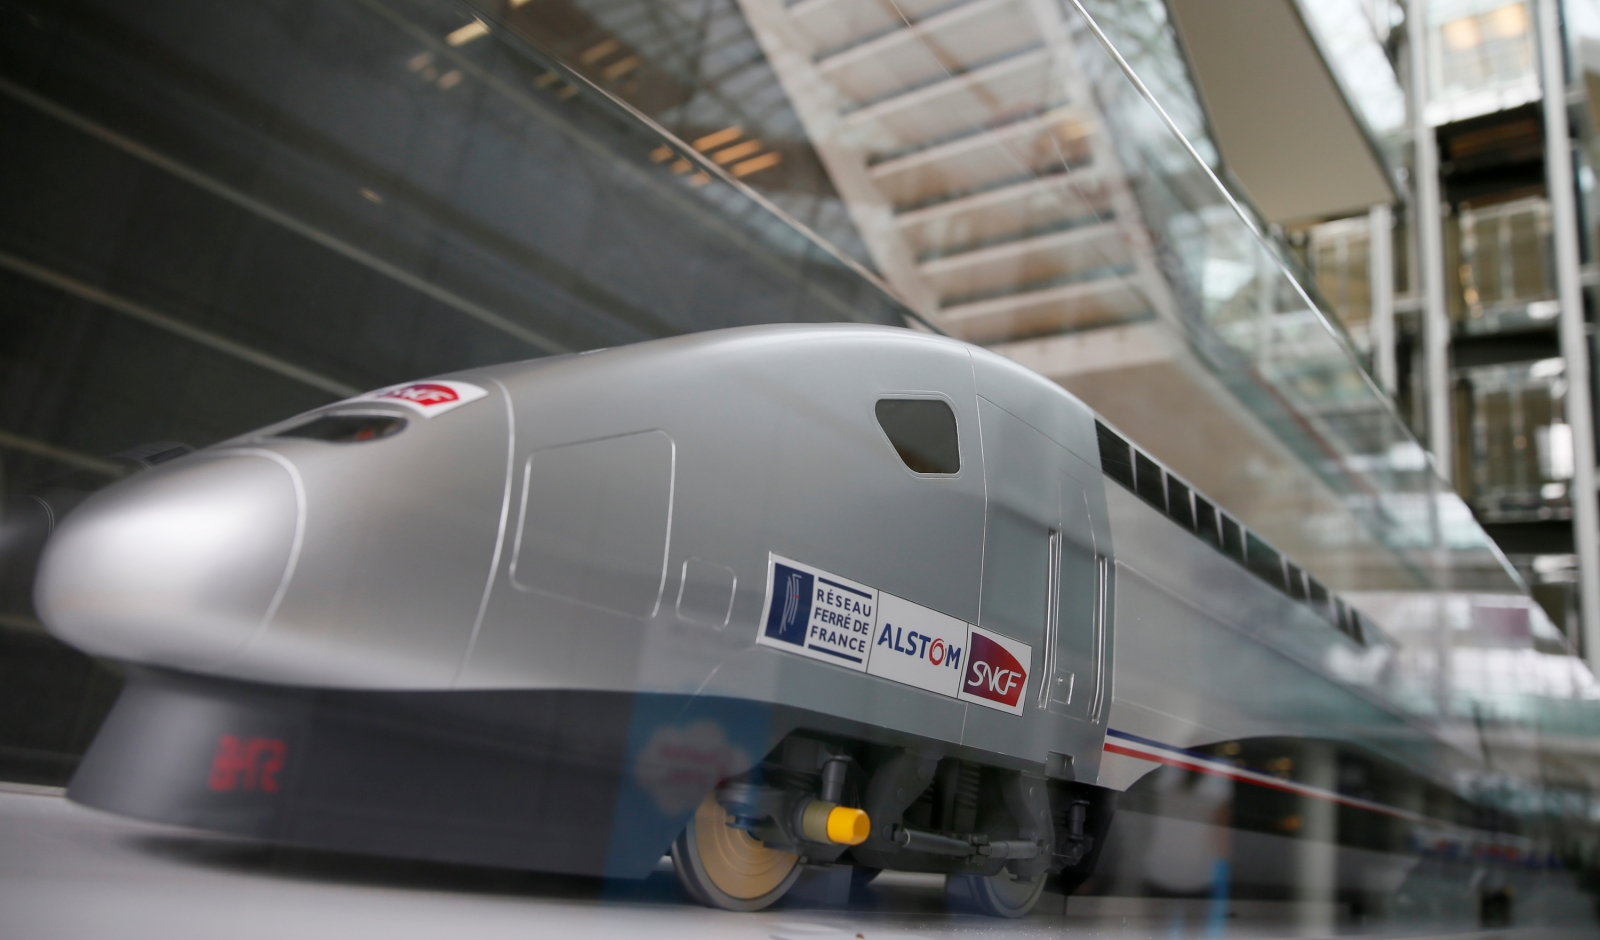 Alstom signs $2bn contract with Amtrak for 28 new high-speed trains that will run between Boston and Washington